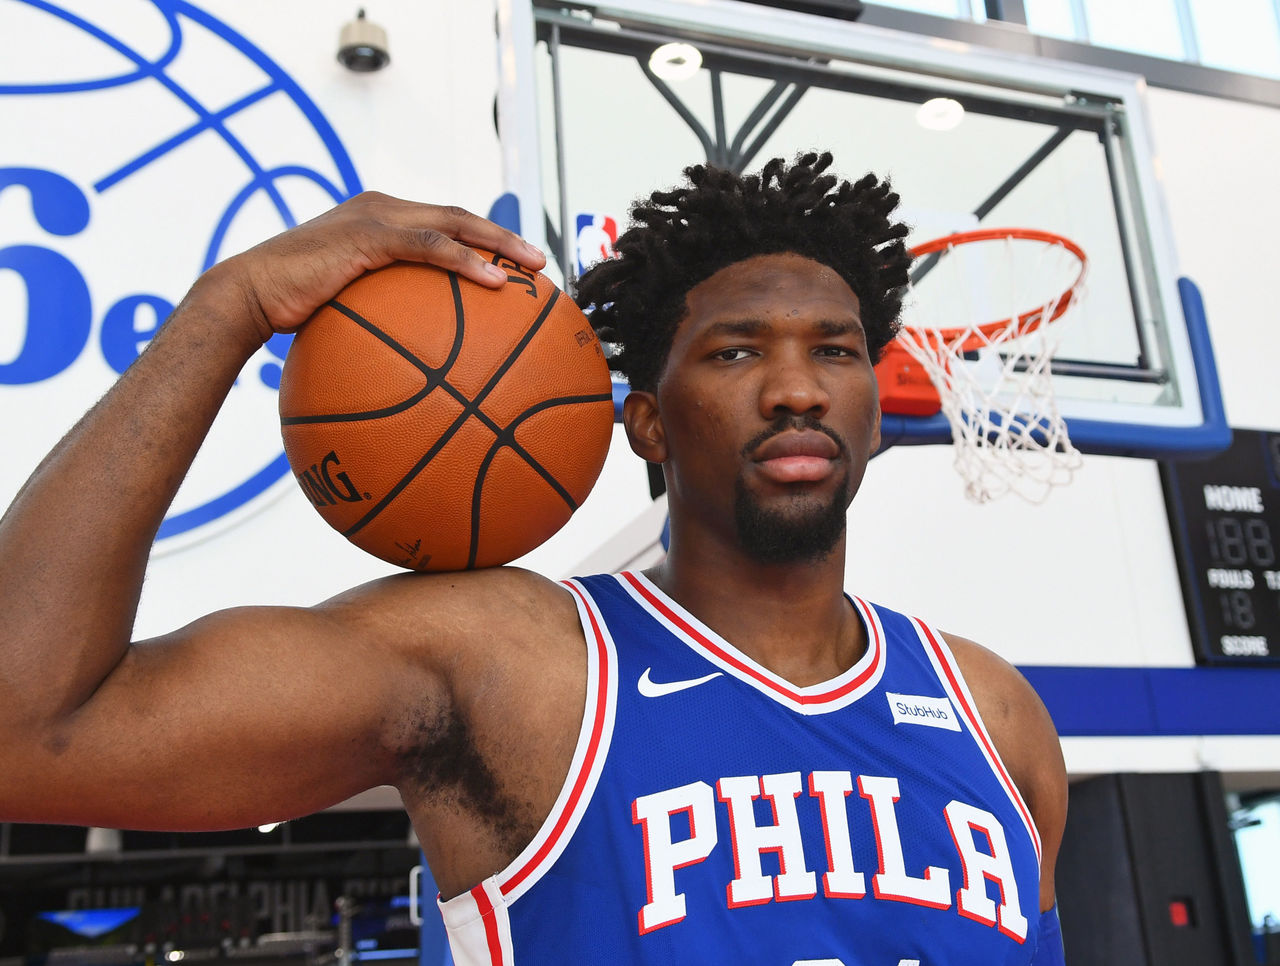 Cropped 2017 09 25t230952z 690762123 nocid rtrmadp 3 nba philadelphia 76ers media day